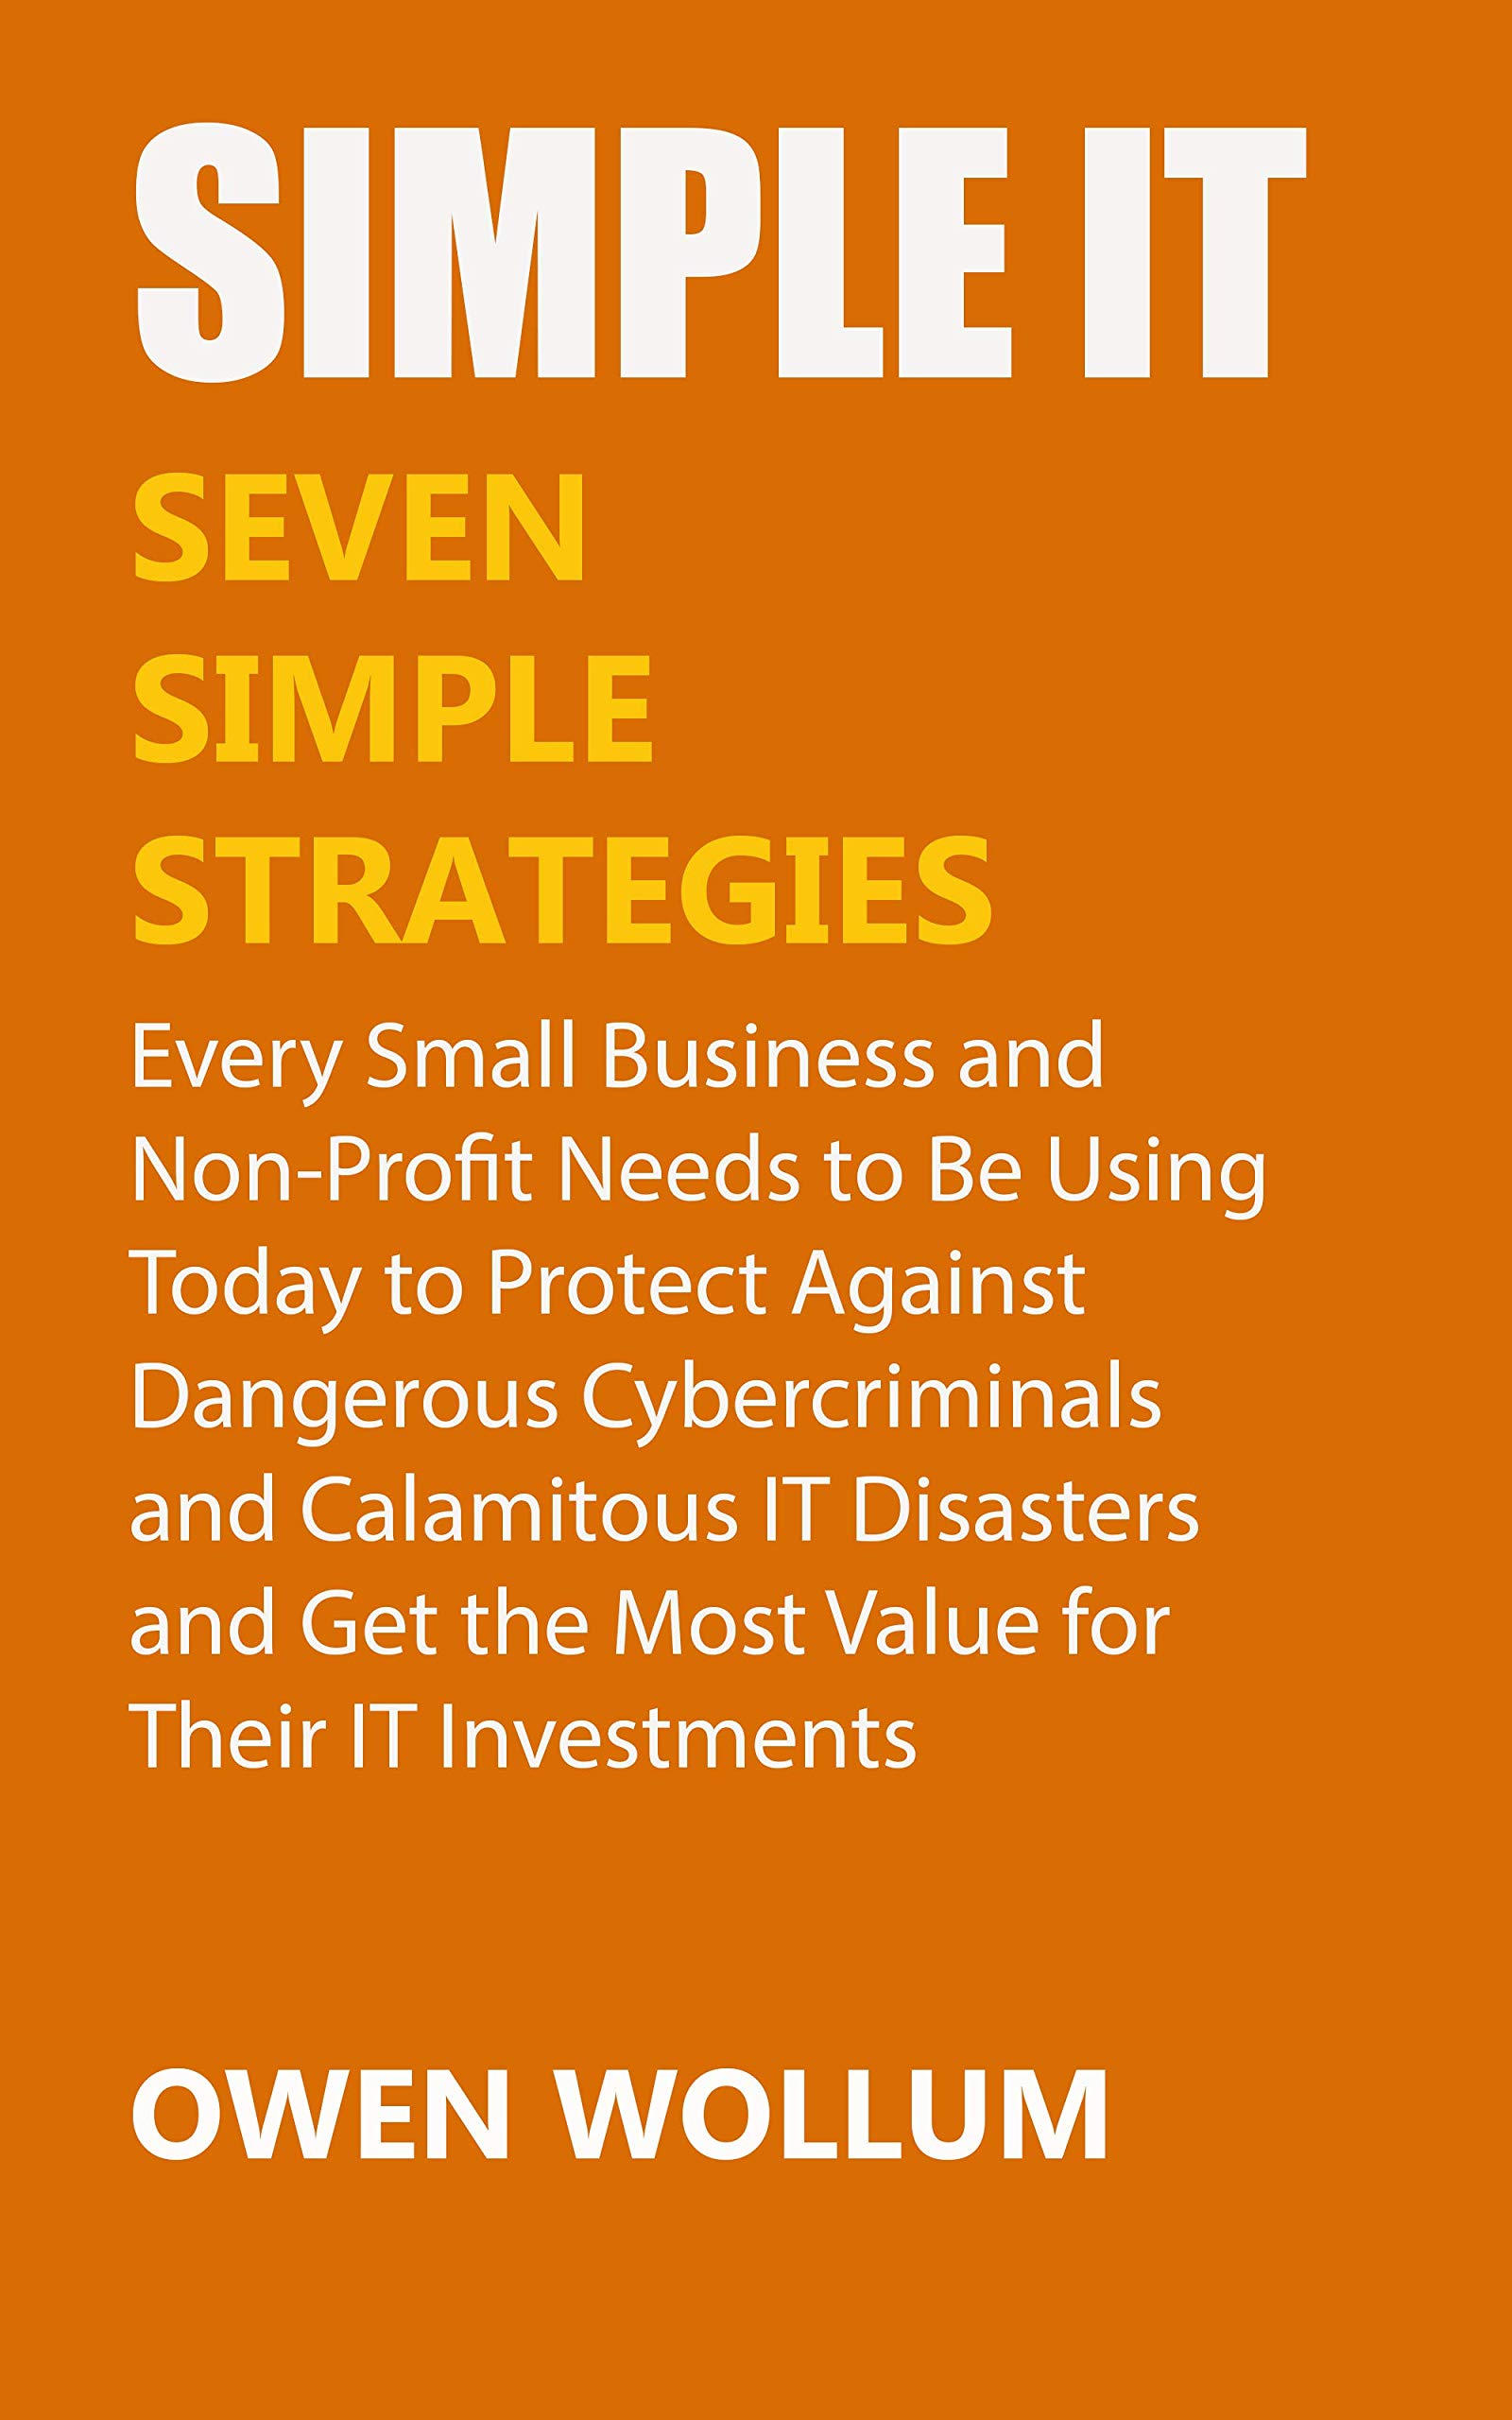 Simple IT: Seven Simple Strategies Every Small Business and Non-Profit Needs to Be Using Today to Protect Against Dangerous Cybercriminals and Calamitous IT Disasters